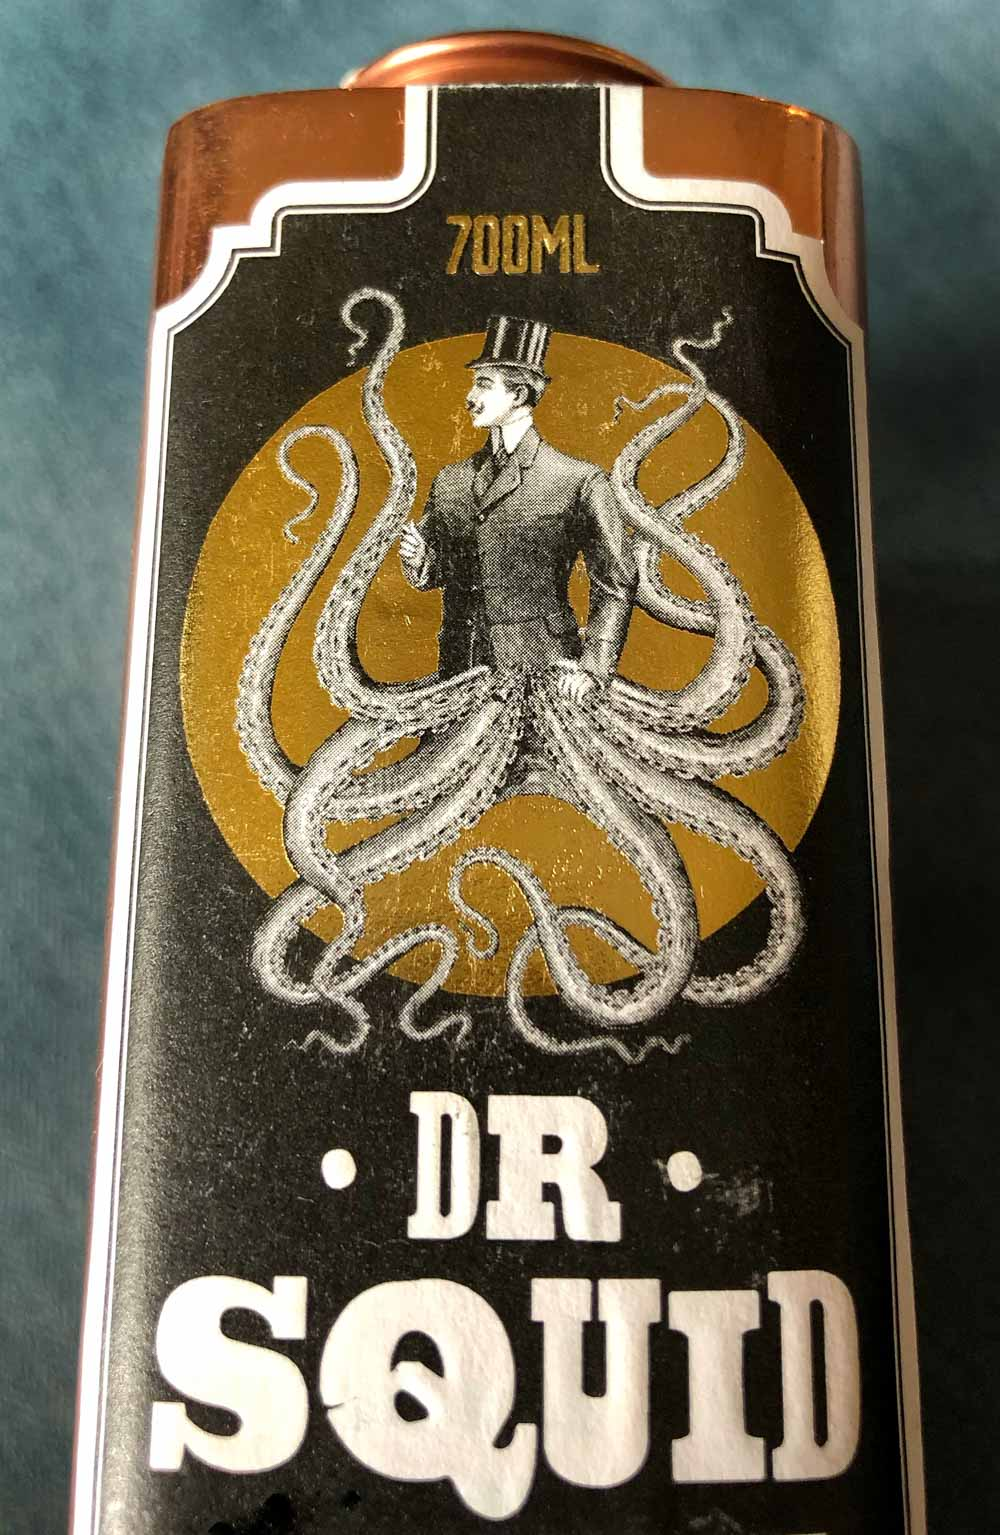 Dr Squid Gin from Pocketful of Stones Distillers, Cornwall